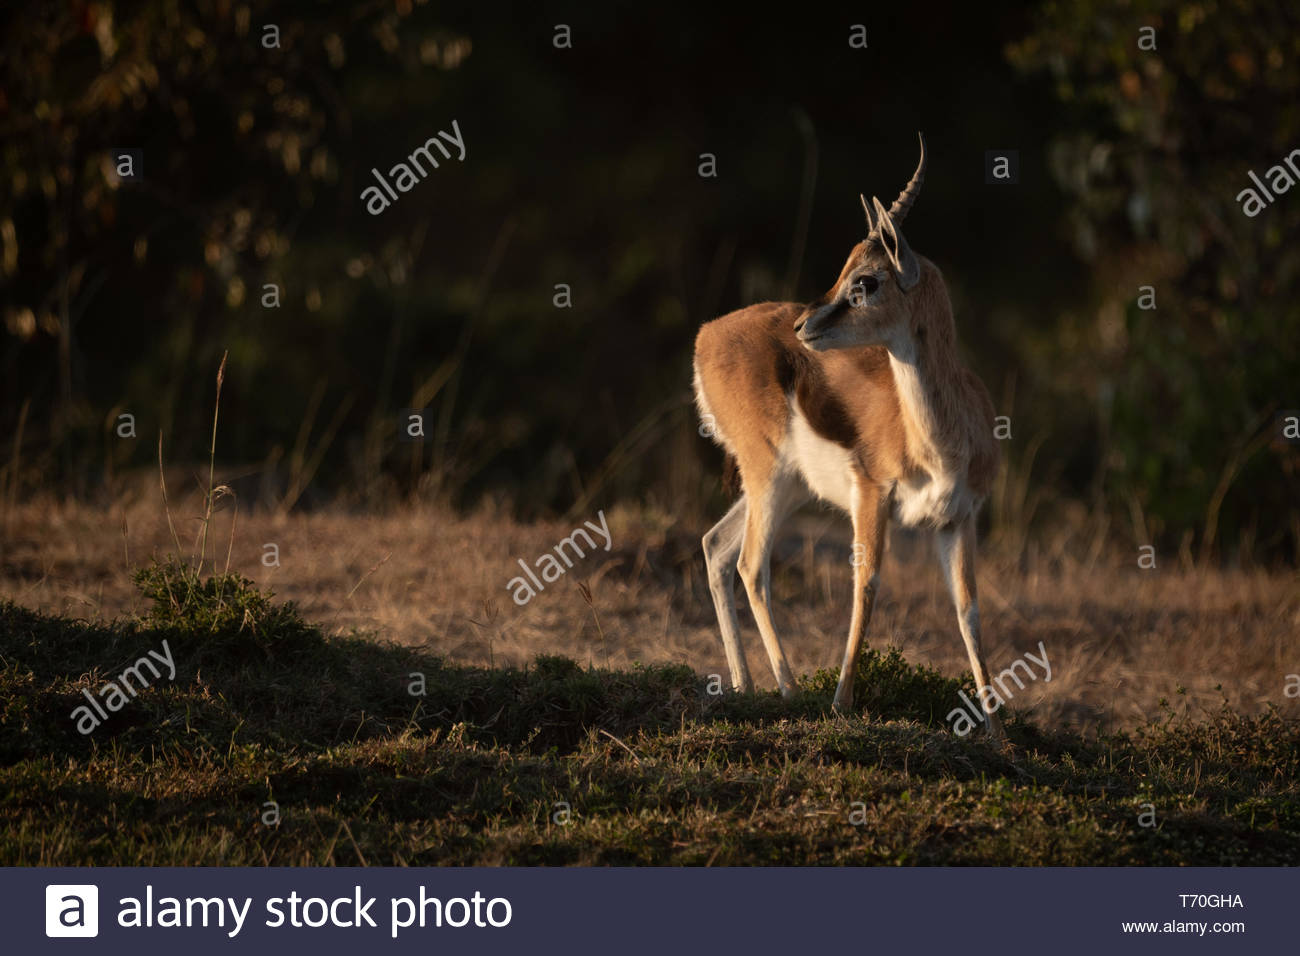 Thomson gazelle stands in savannah with catchlight - Stock Image